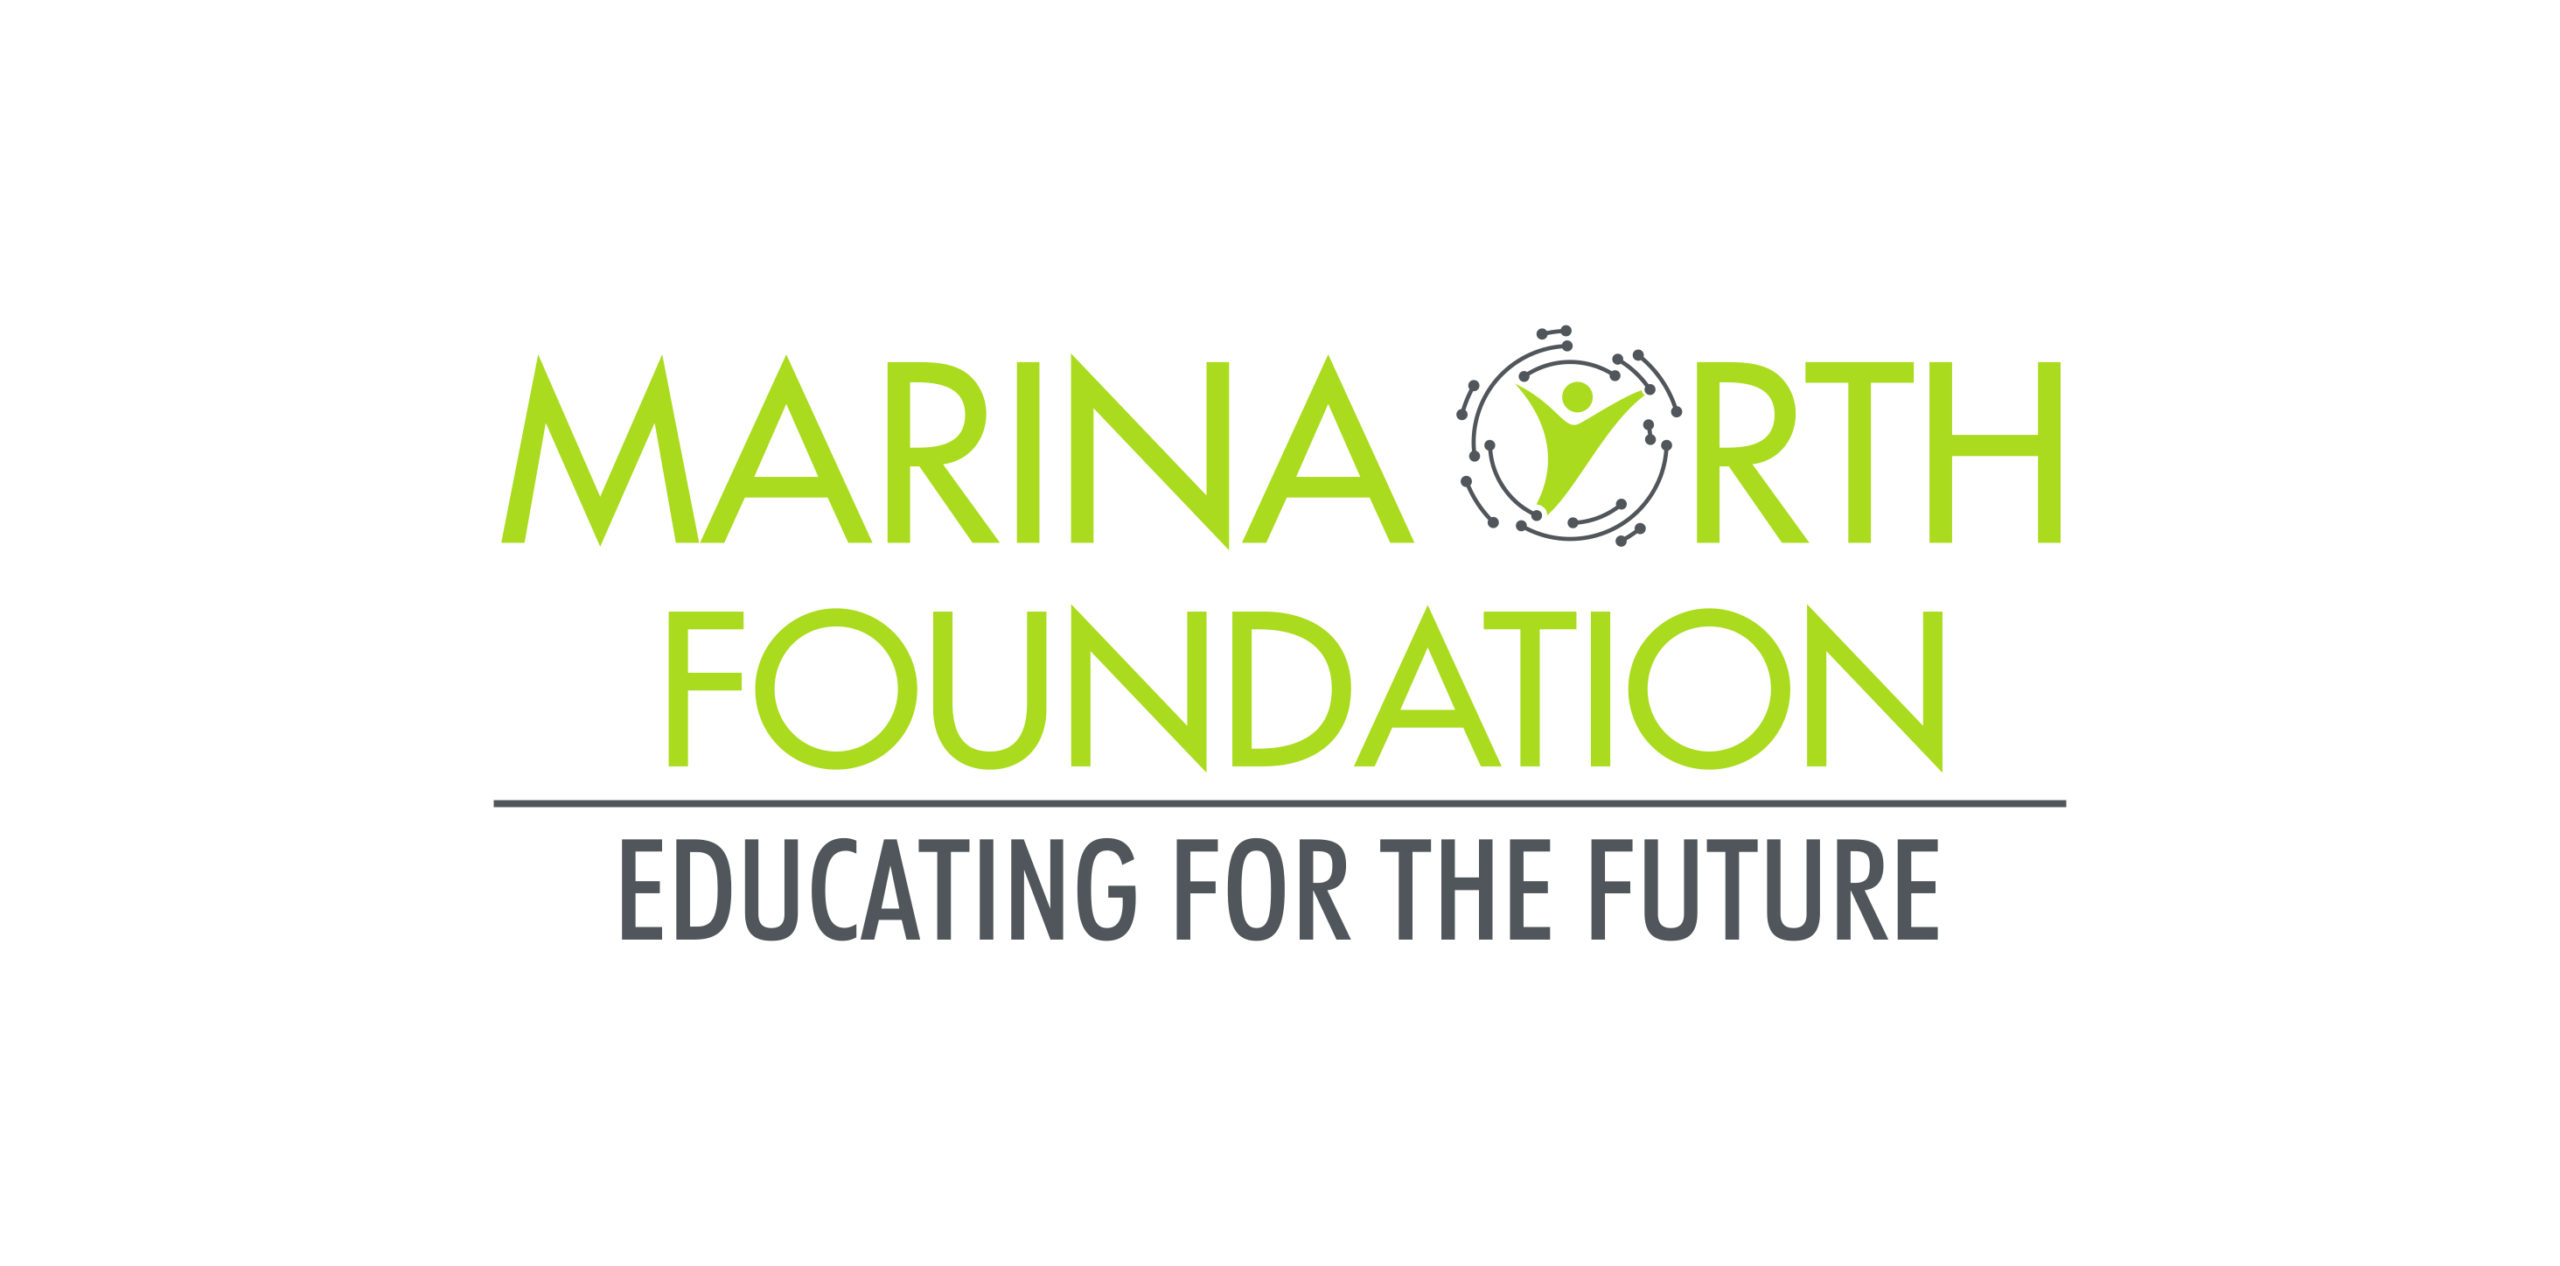 Fund Marina Orth Foundation